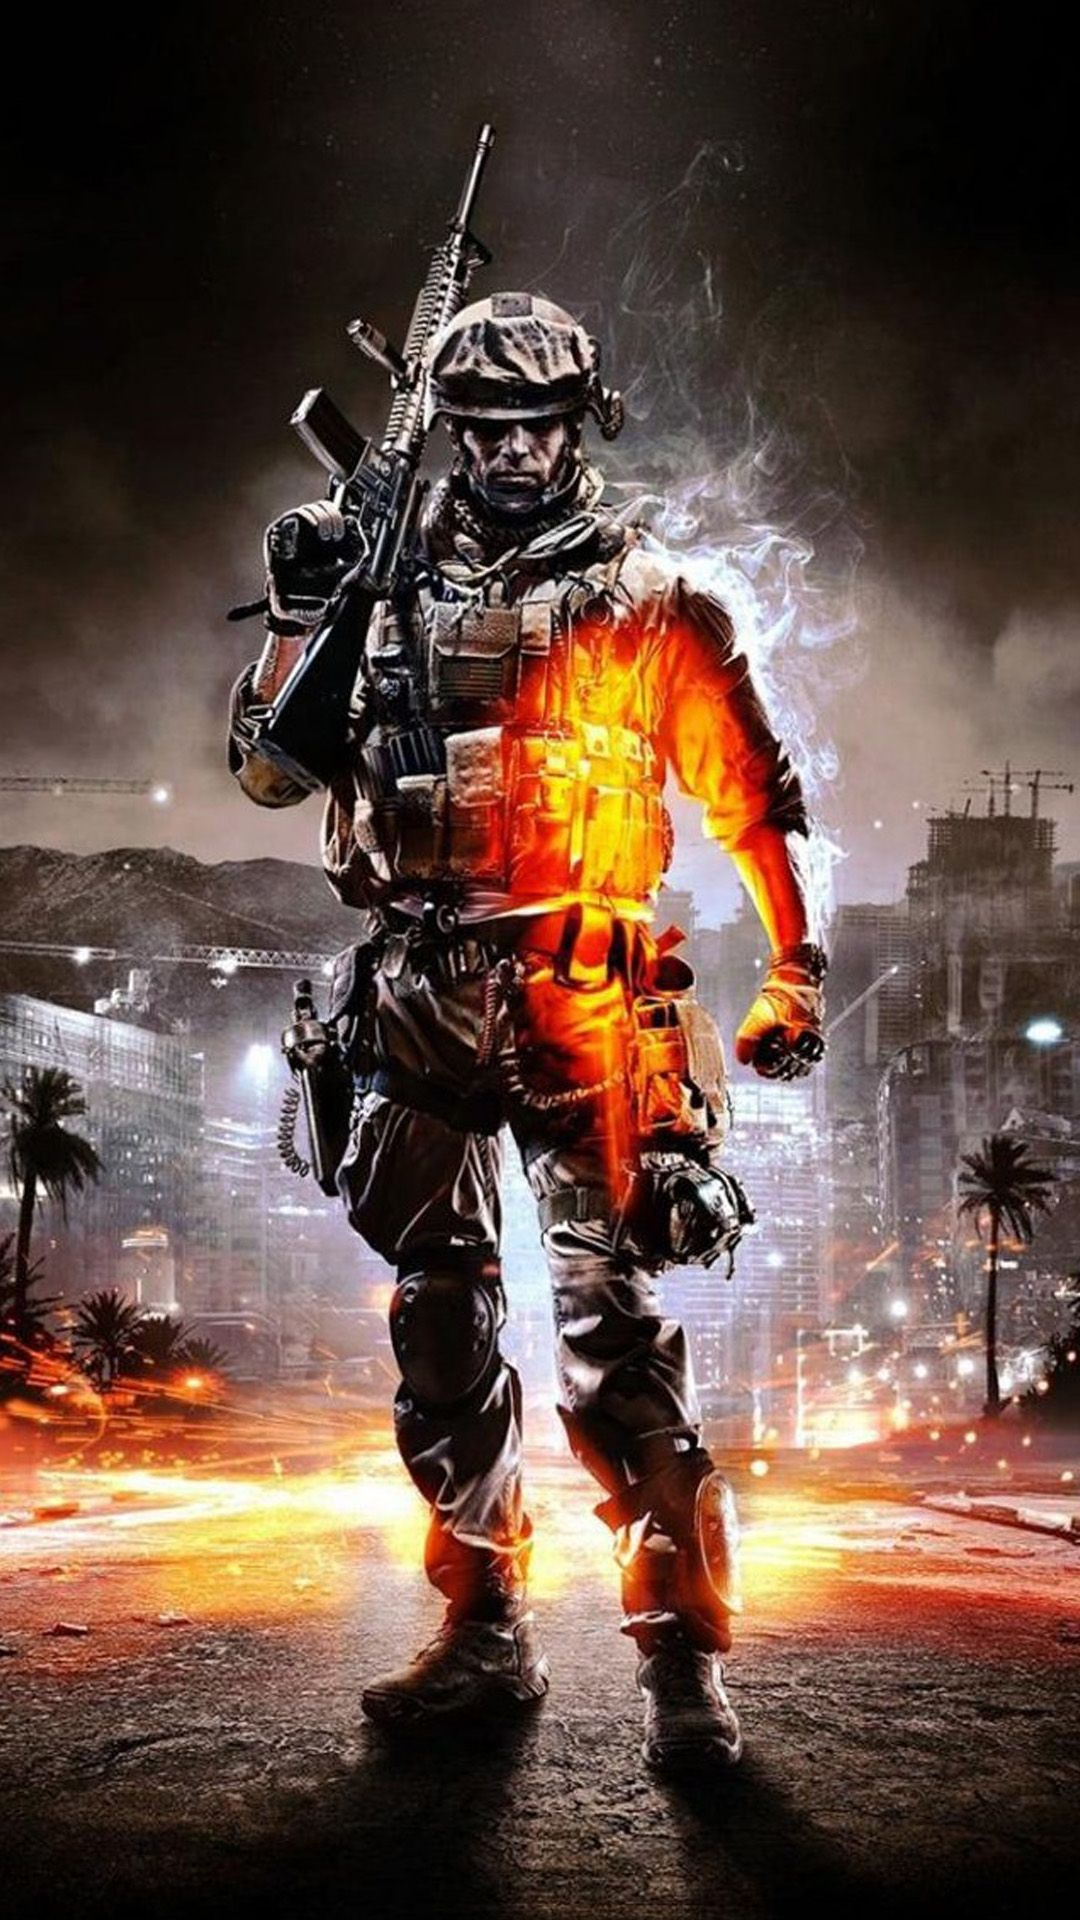 Modern Warfare Call Of Duty Background Army Wallpaper Indian Army Wallpapers Army Images